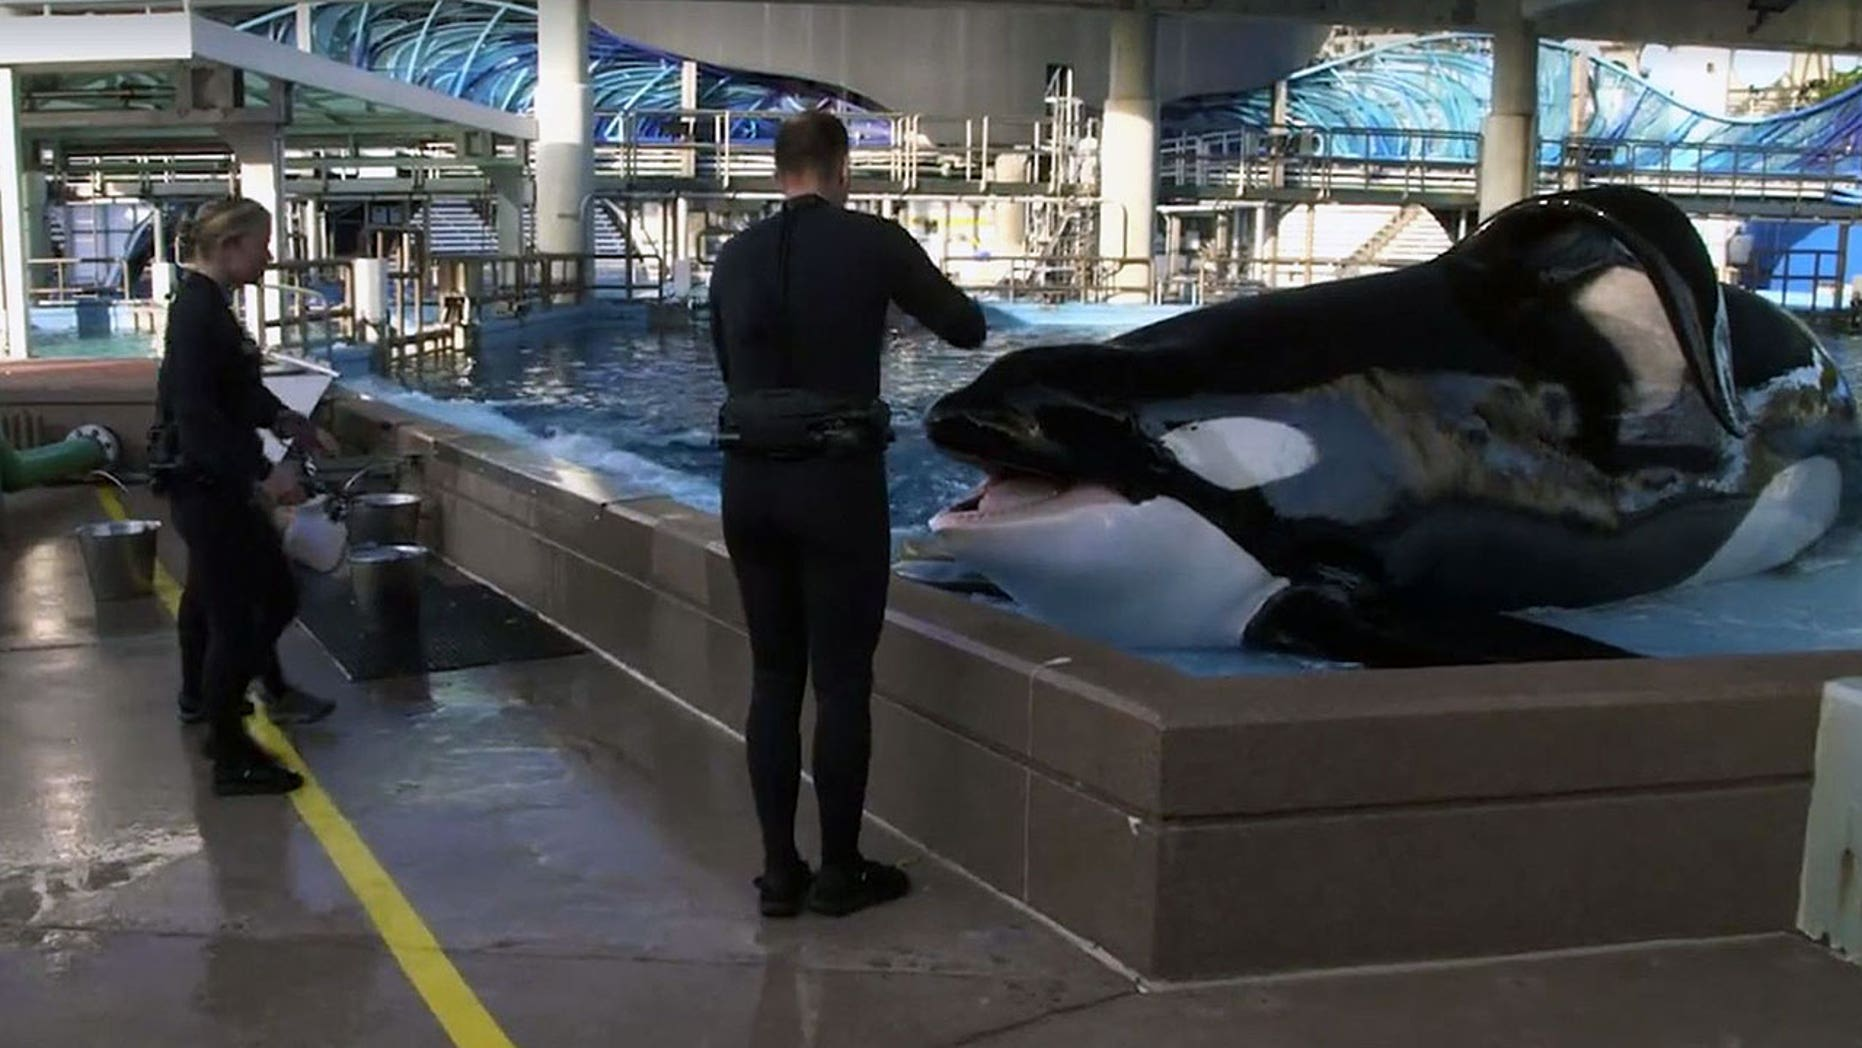 Tilikum was estimated to be 36 years old.